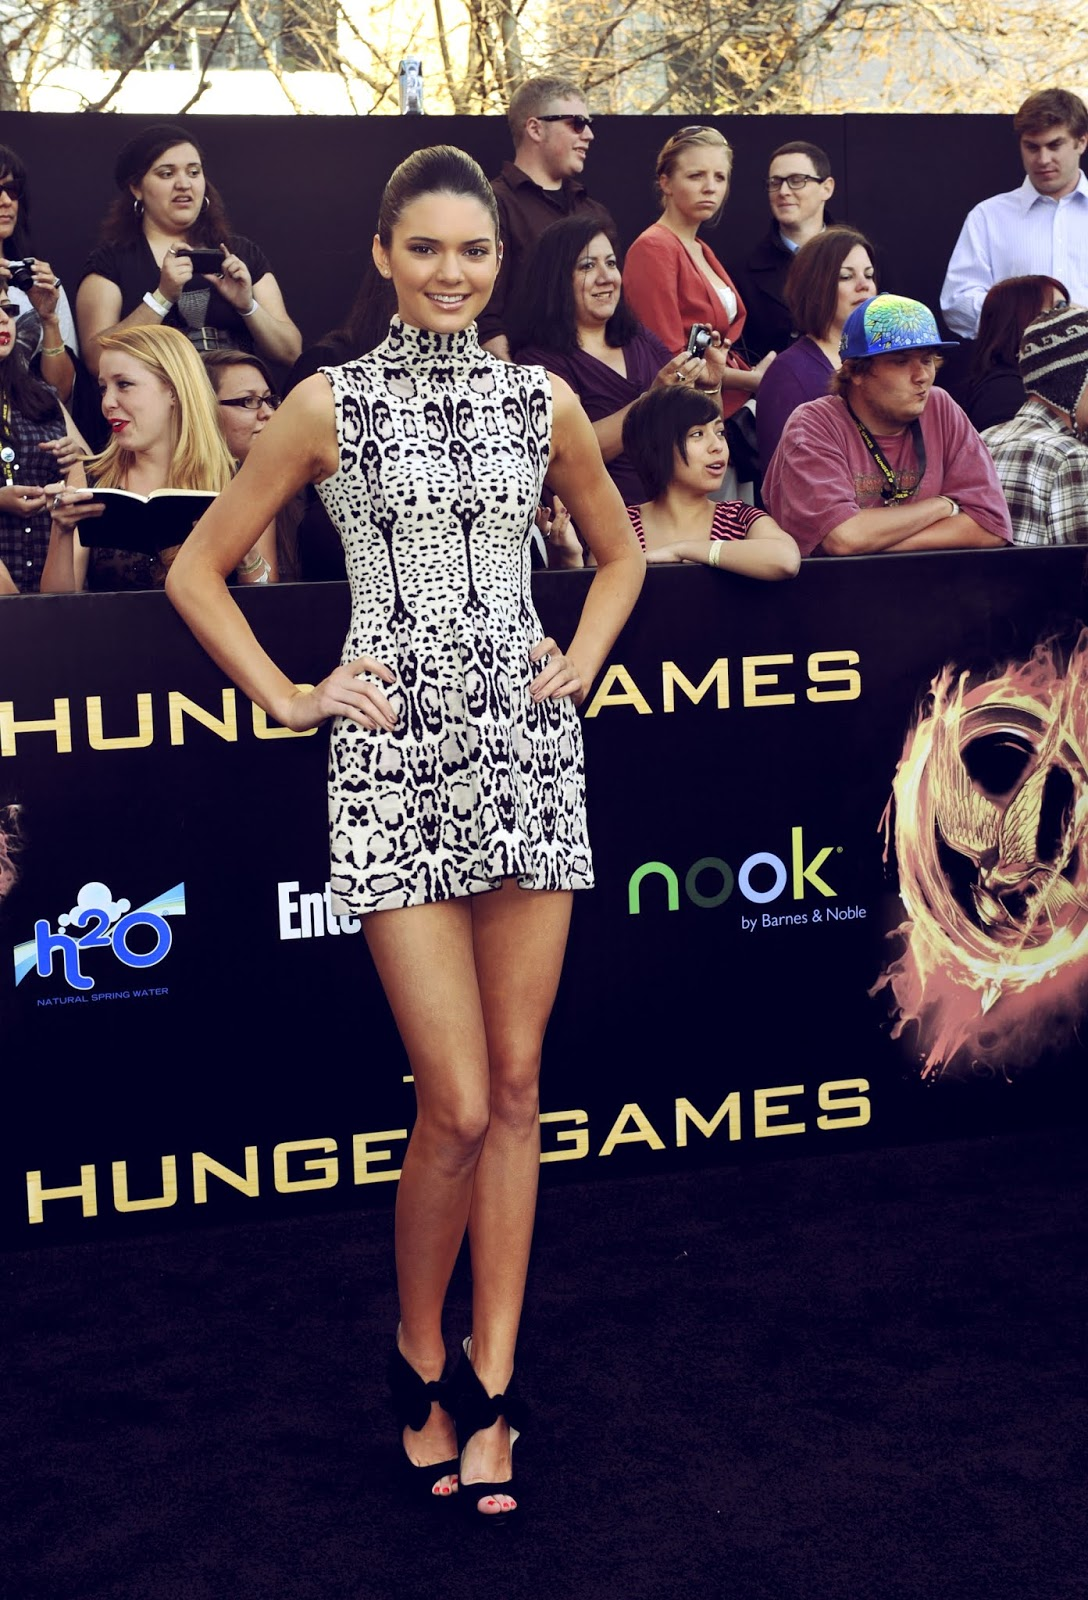 44 - At The Hunger Games Los Angeles Premiere on March 12, 2012